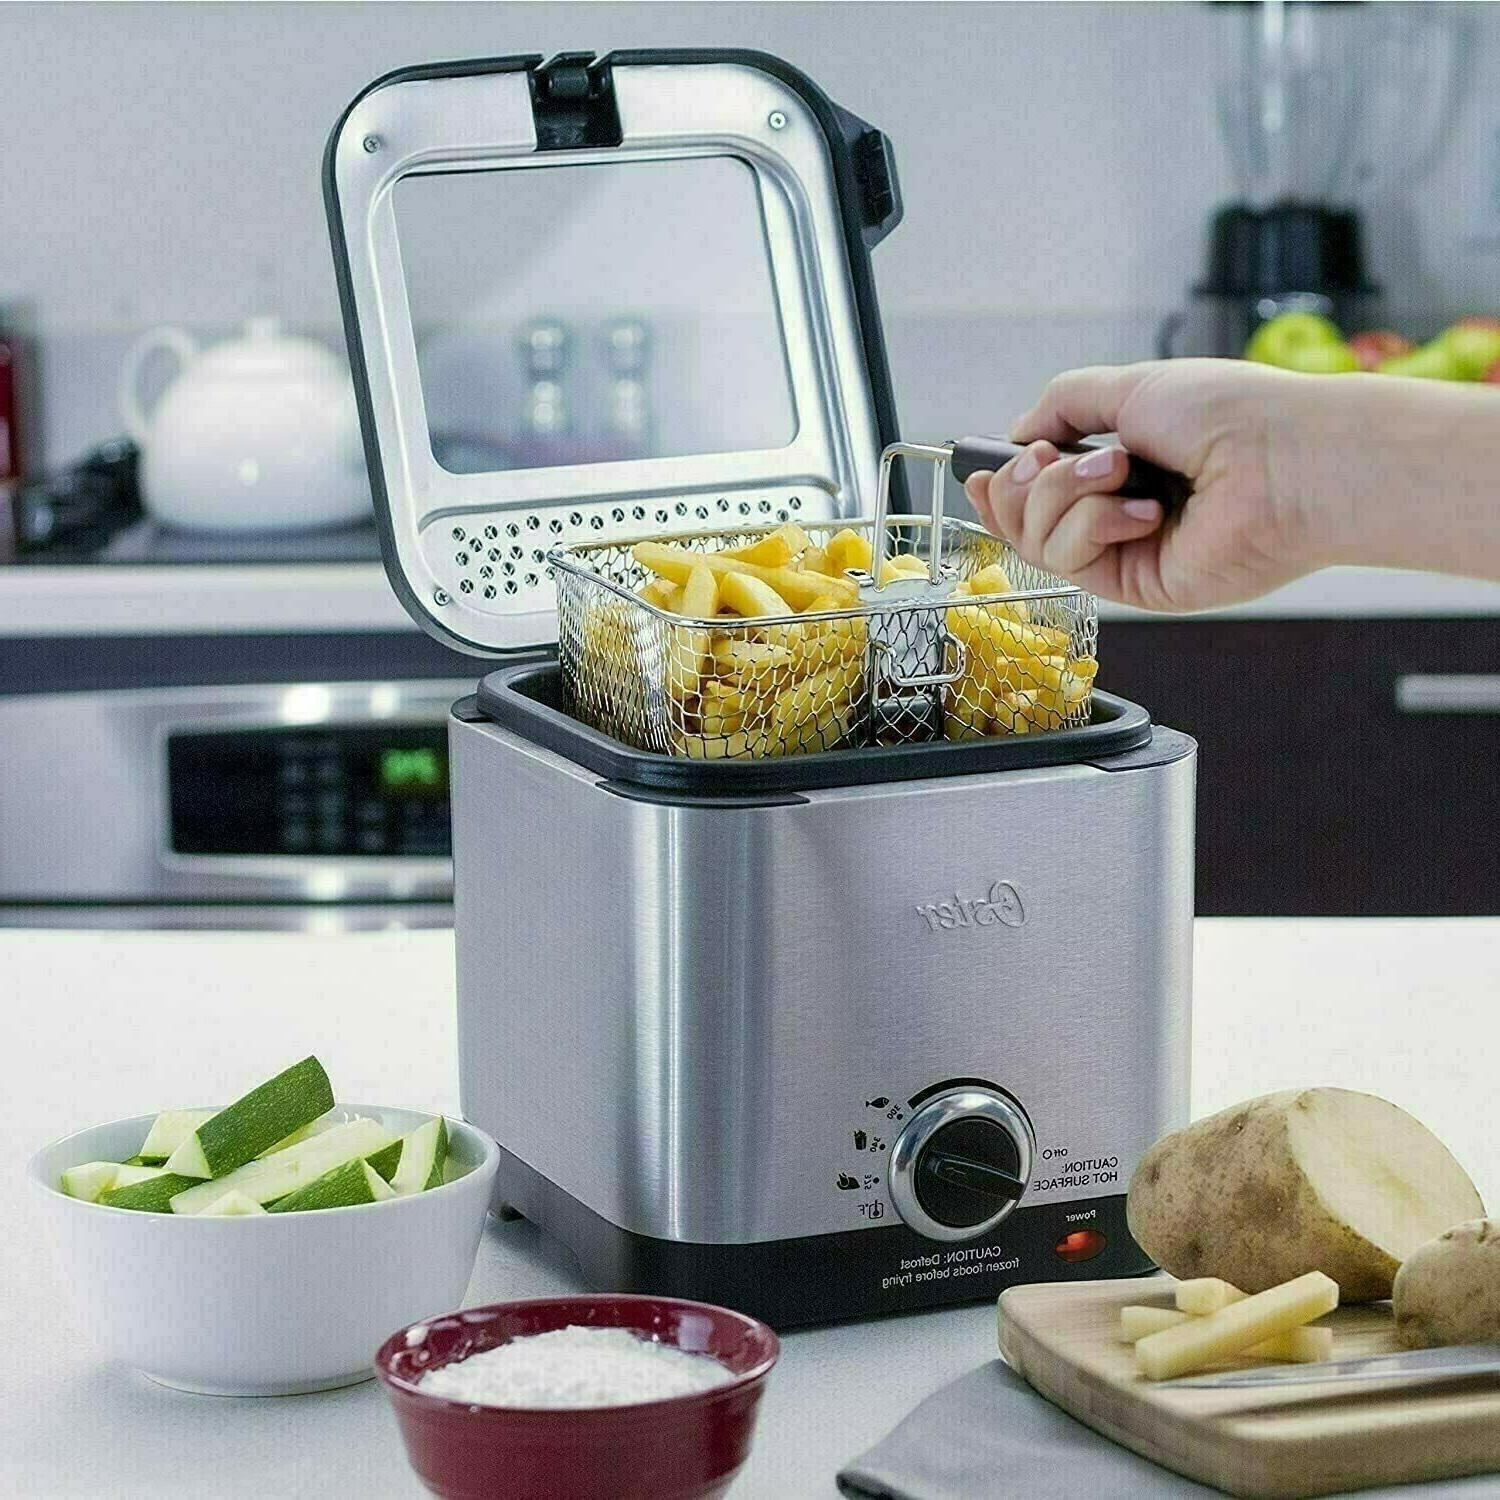 SALE Oster Compact Stainless Deep Fryer Steel